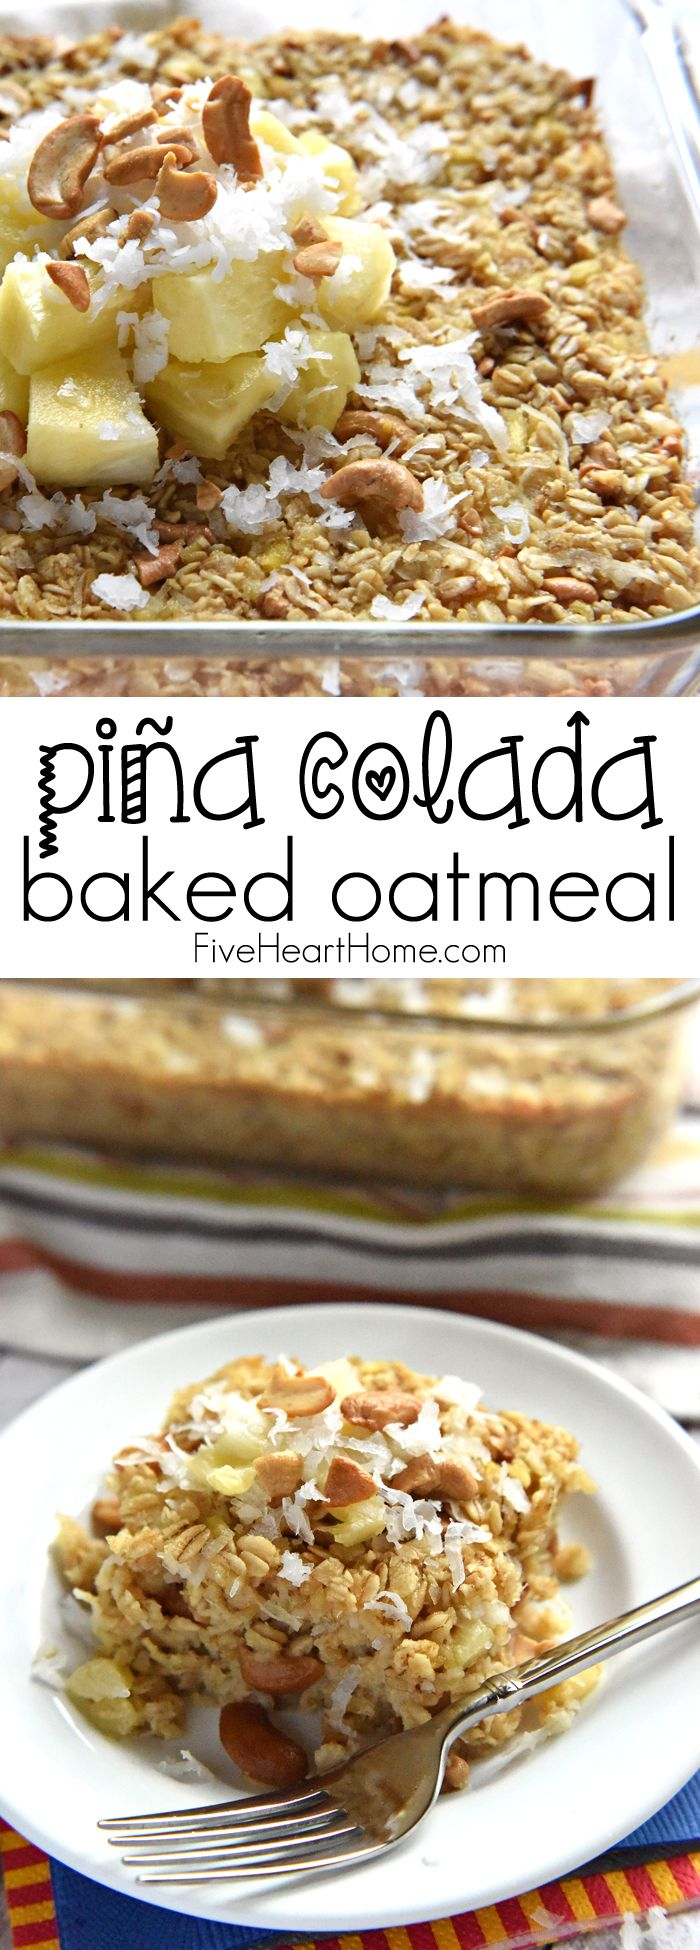 Piña Colada Baked Oatmeal ~ this wholesome breakfast recipe gets a tropical twist with the addition of fresh minced pineapple, coconut milk, and shredded coconut | FiveHeartHome.com